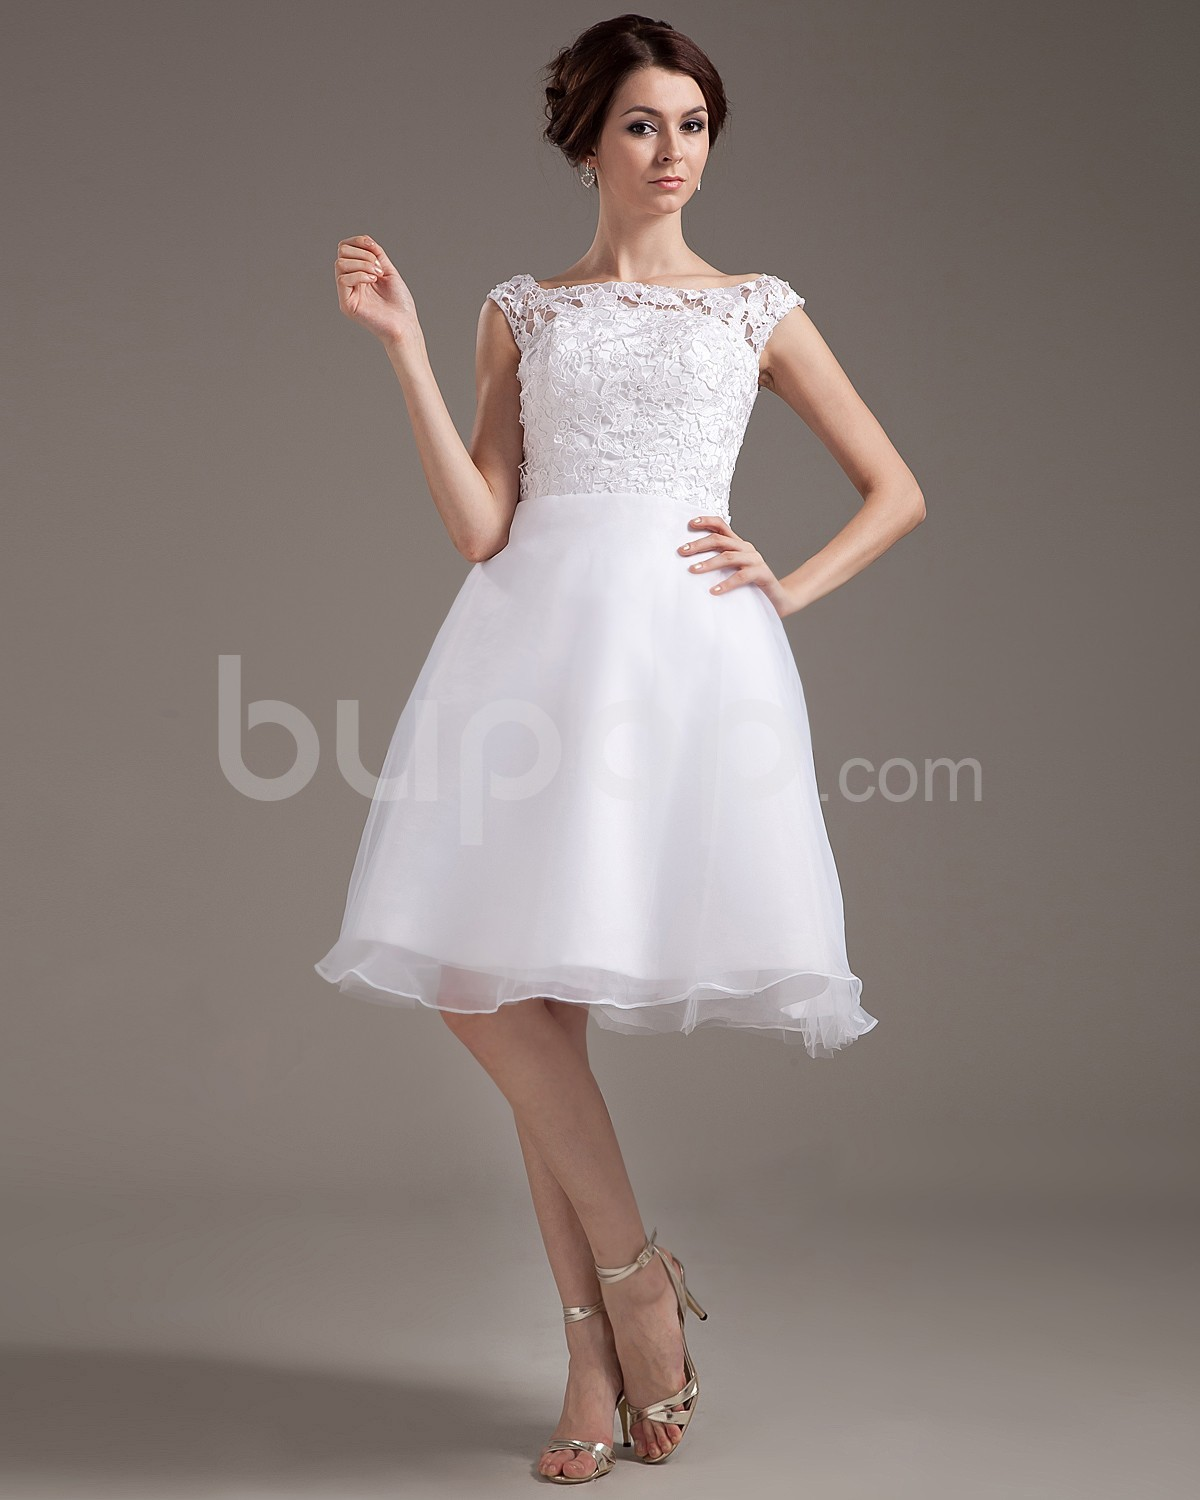 Knee length mother of the bride dresses 2014